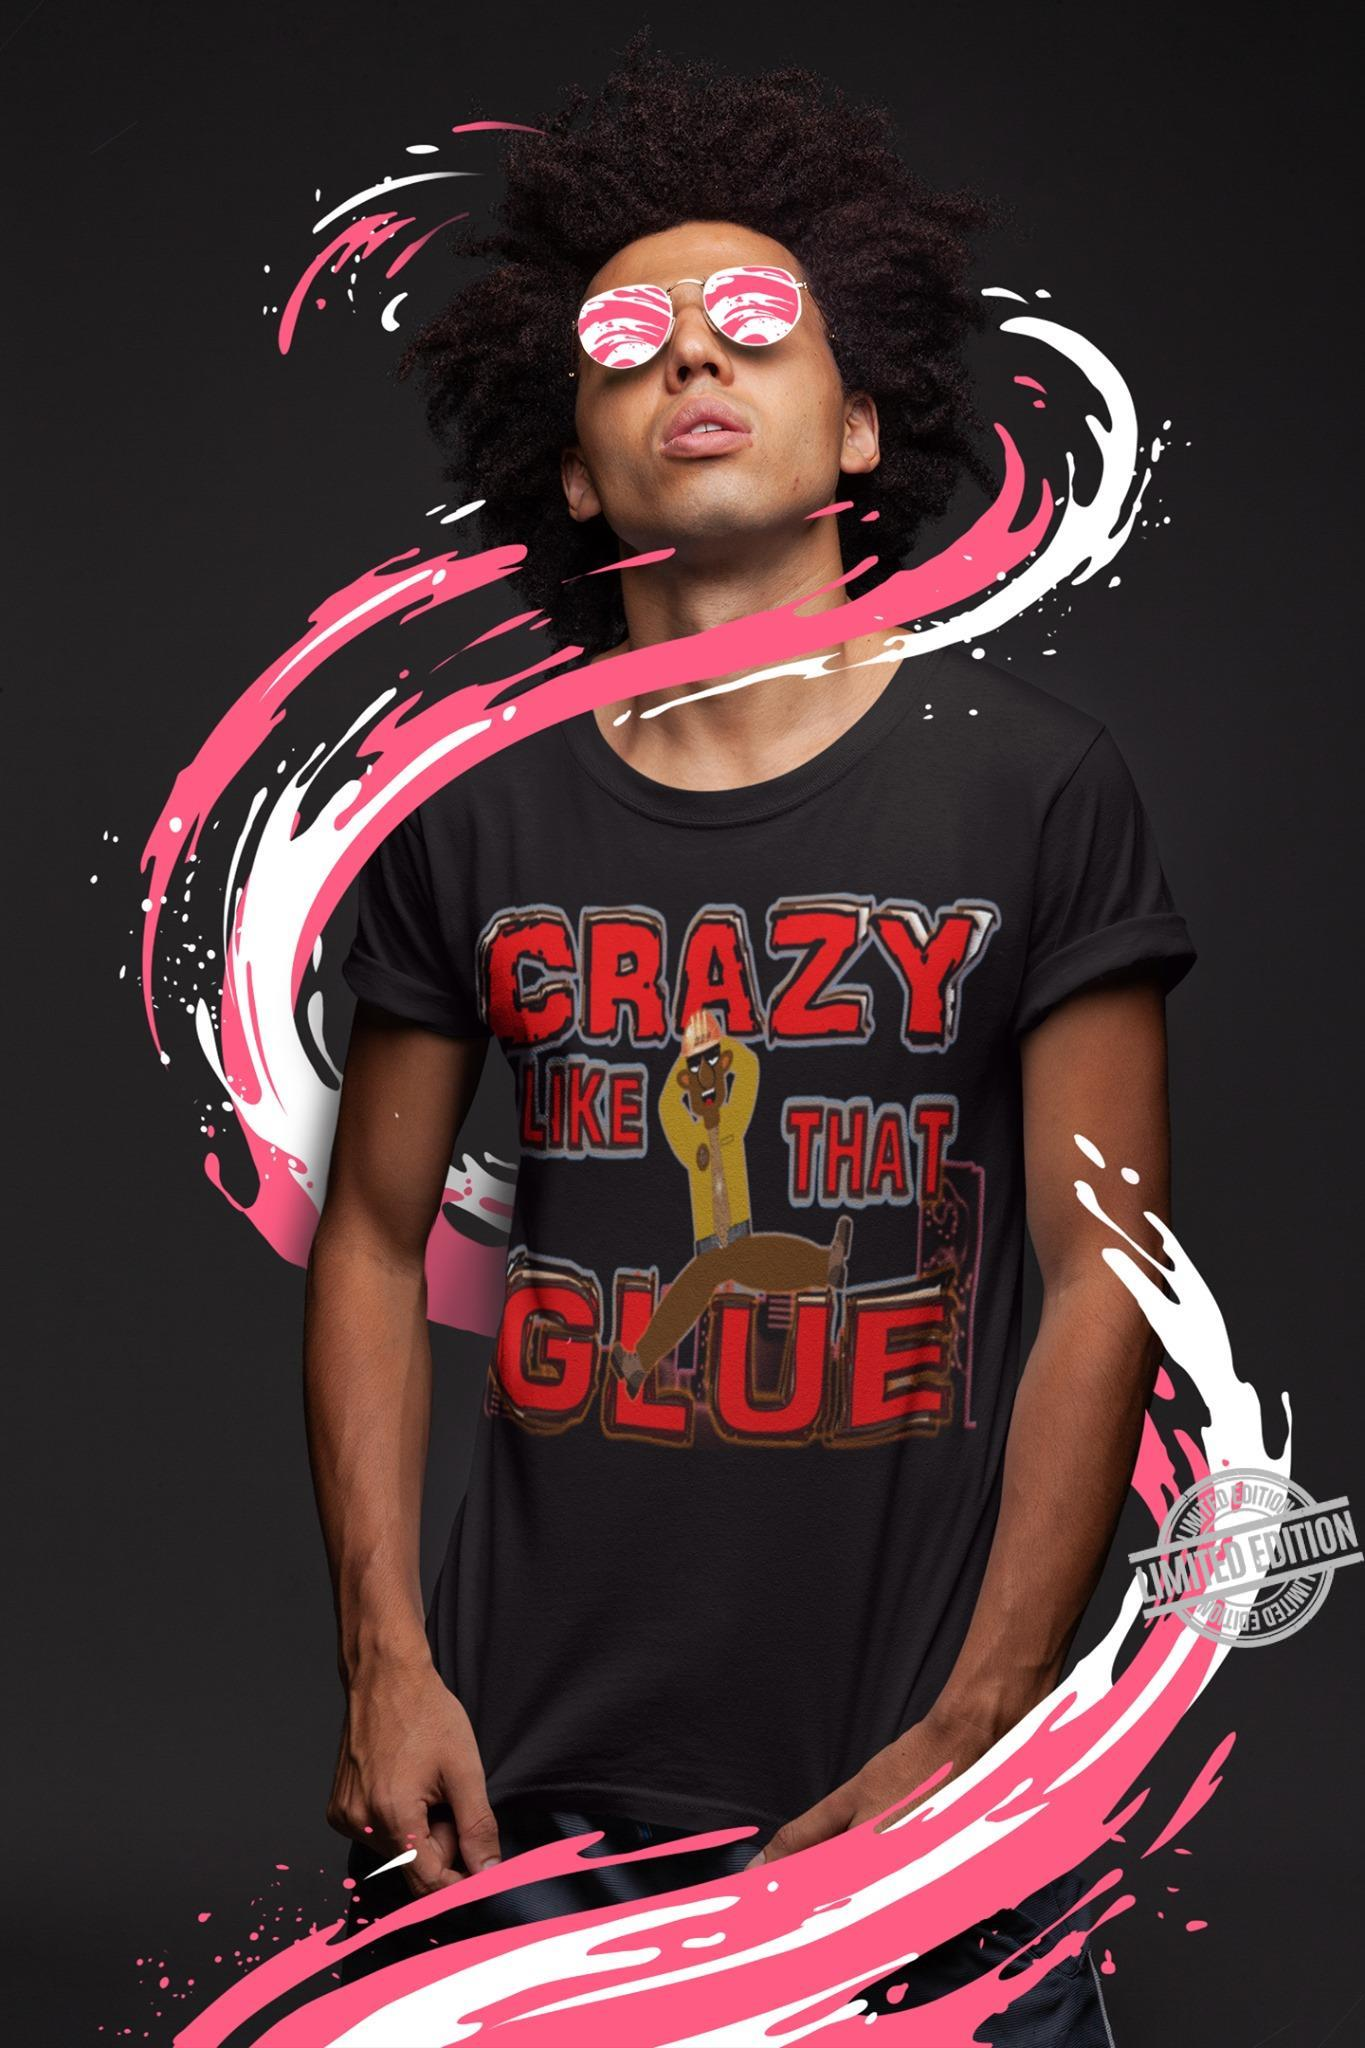 Crazy Like That Glue Shirt